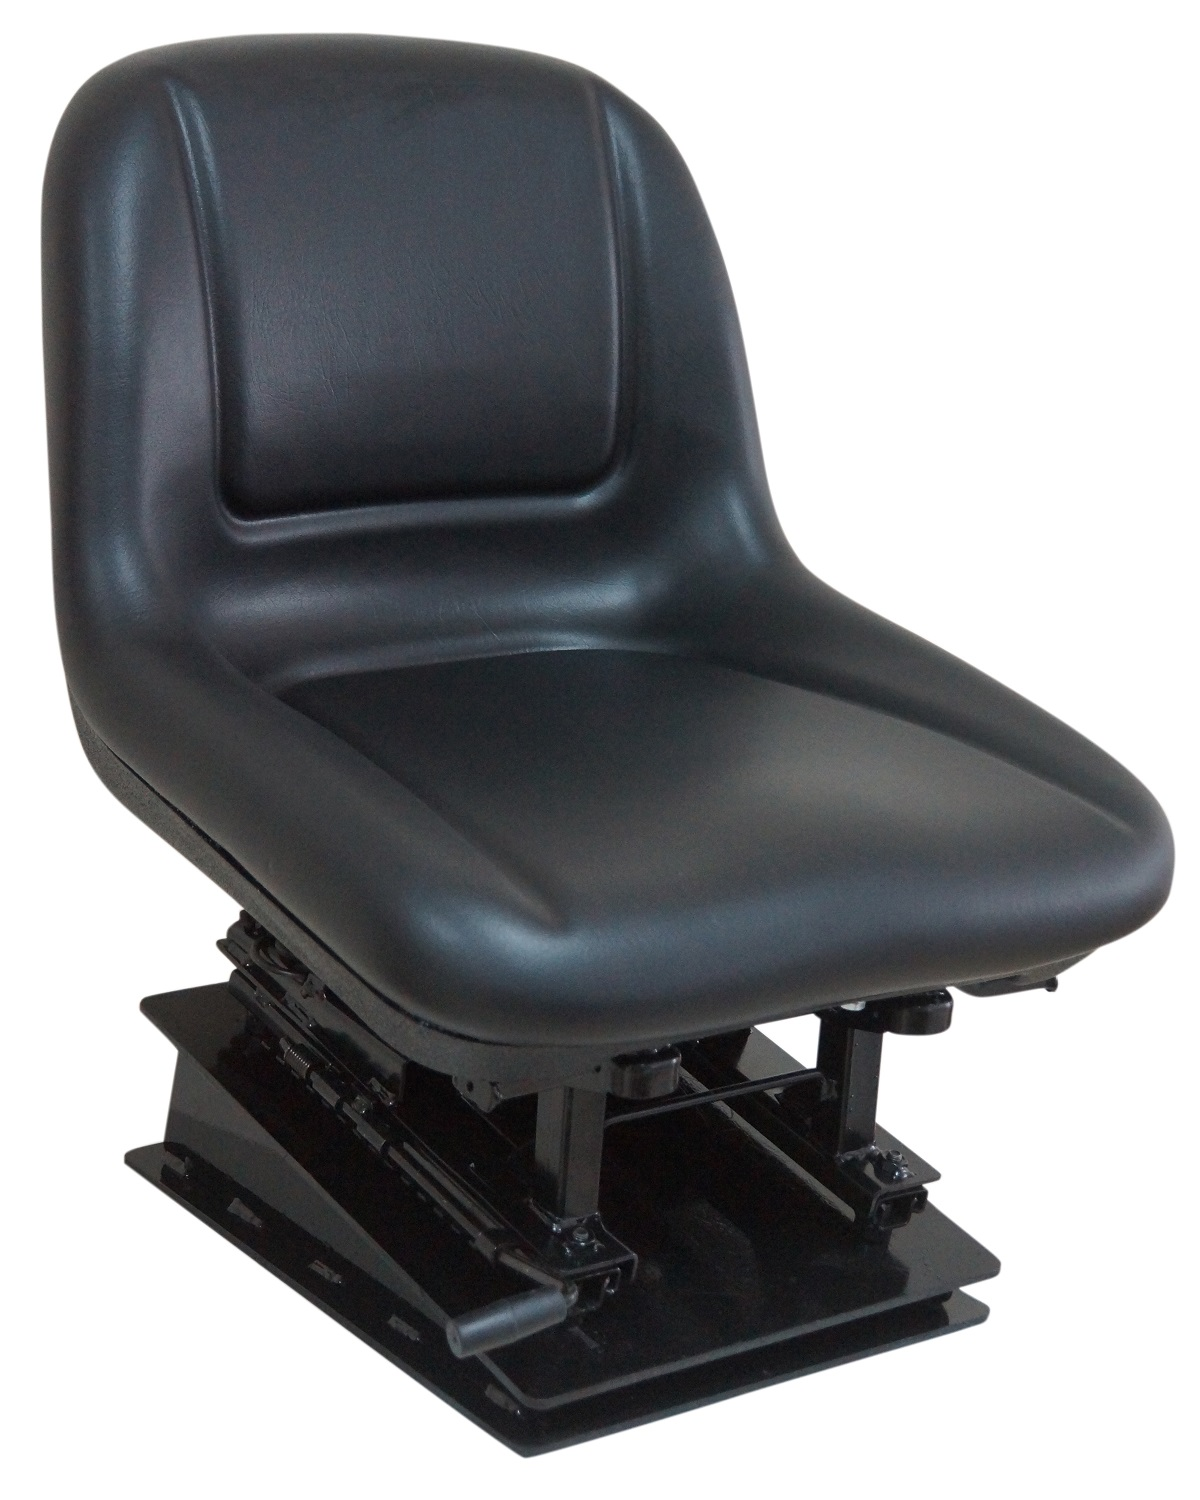 Used Backhoe Seats : Harita develops suspended seats for trucks and tractors